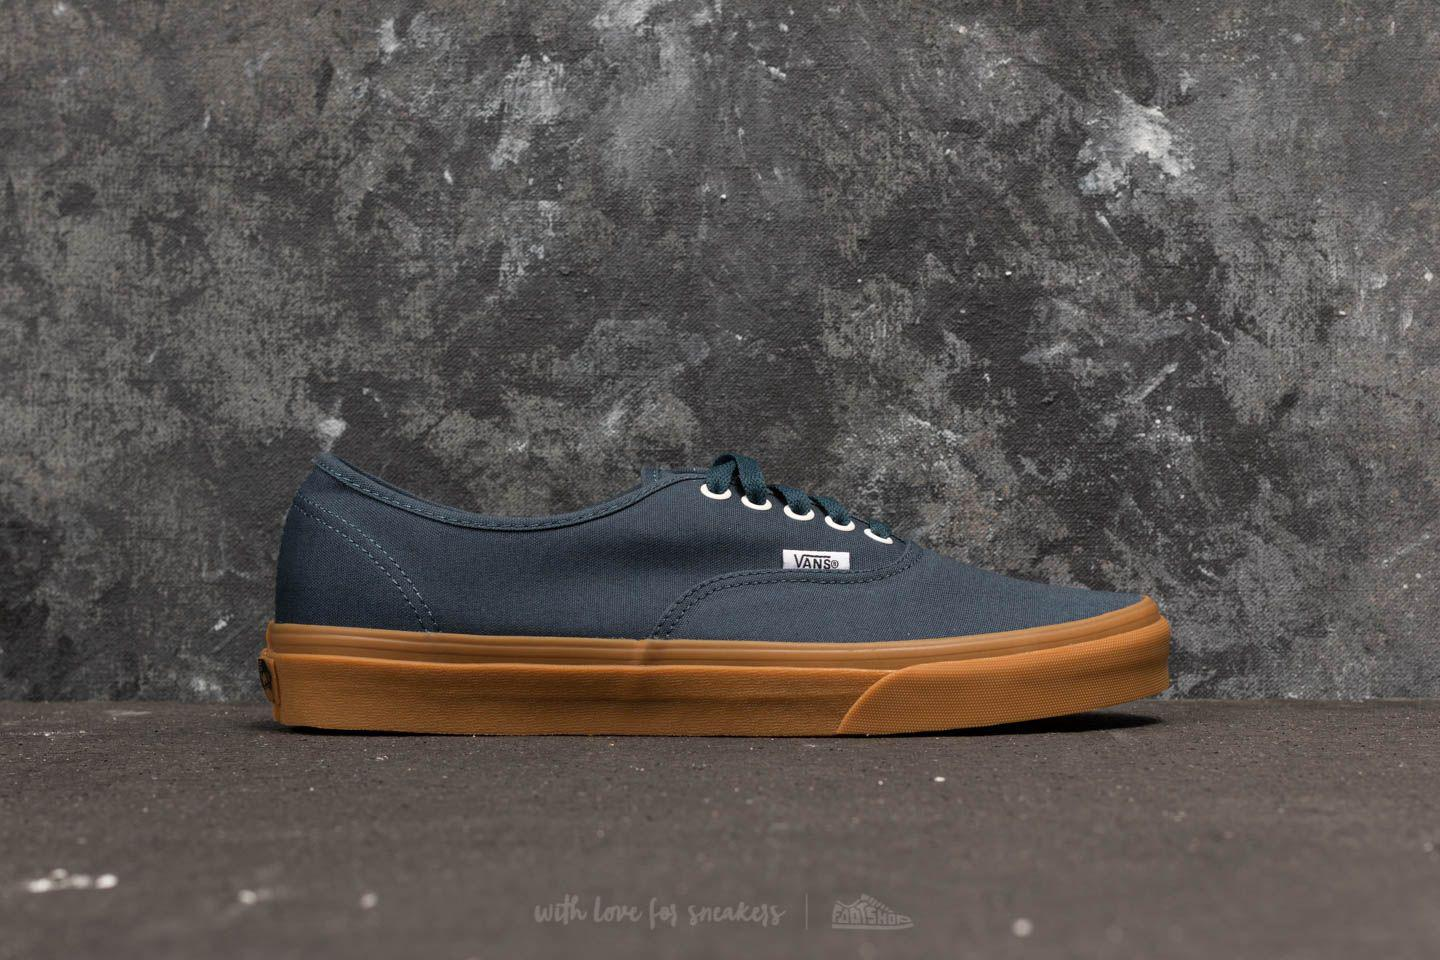 vans authentic reflecting pond